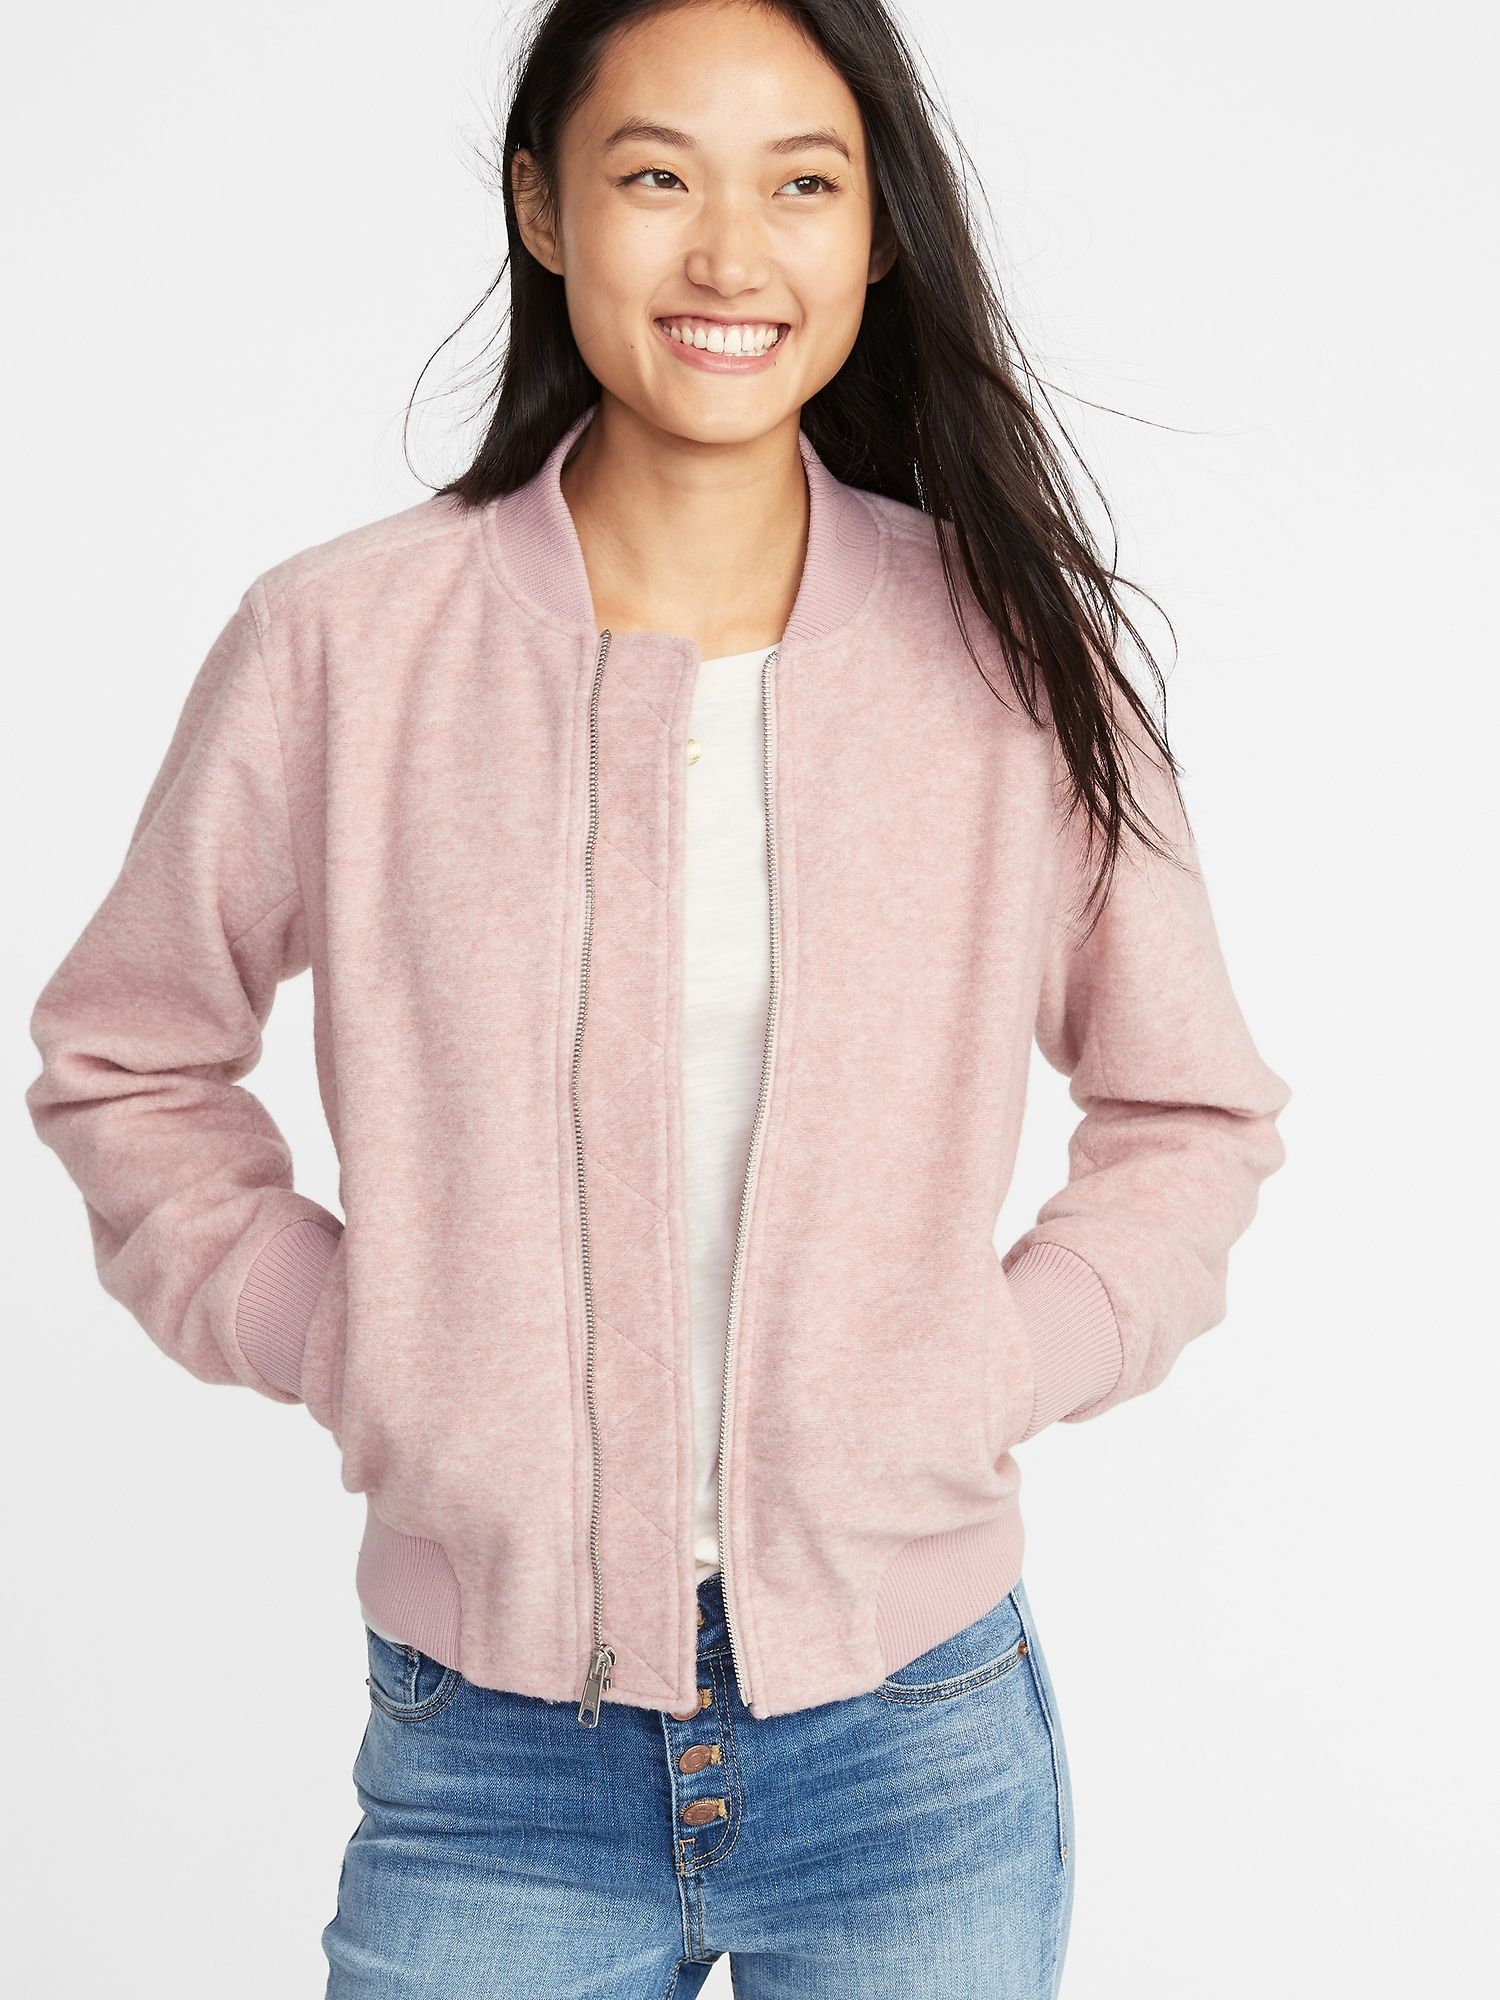 Textured Jacquard Zip Bomber Jacket For Women Old Navy Jackets For Women Pink Bomber Fashion [ 2000 x 1500 Pixel ]